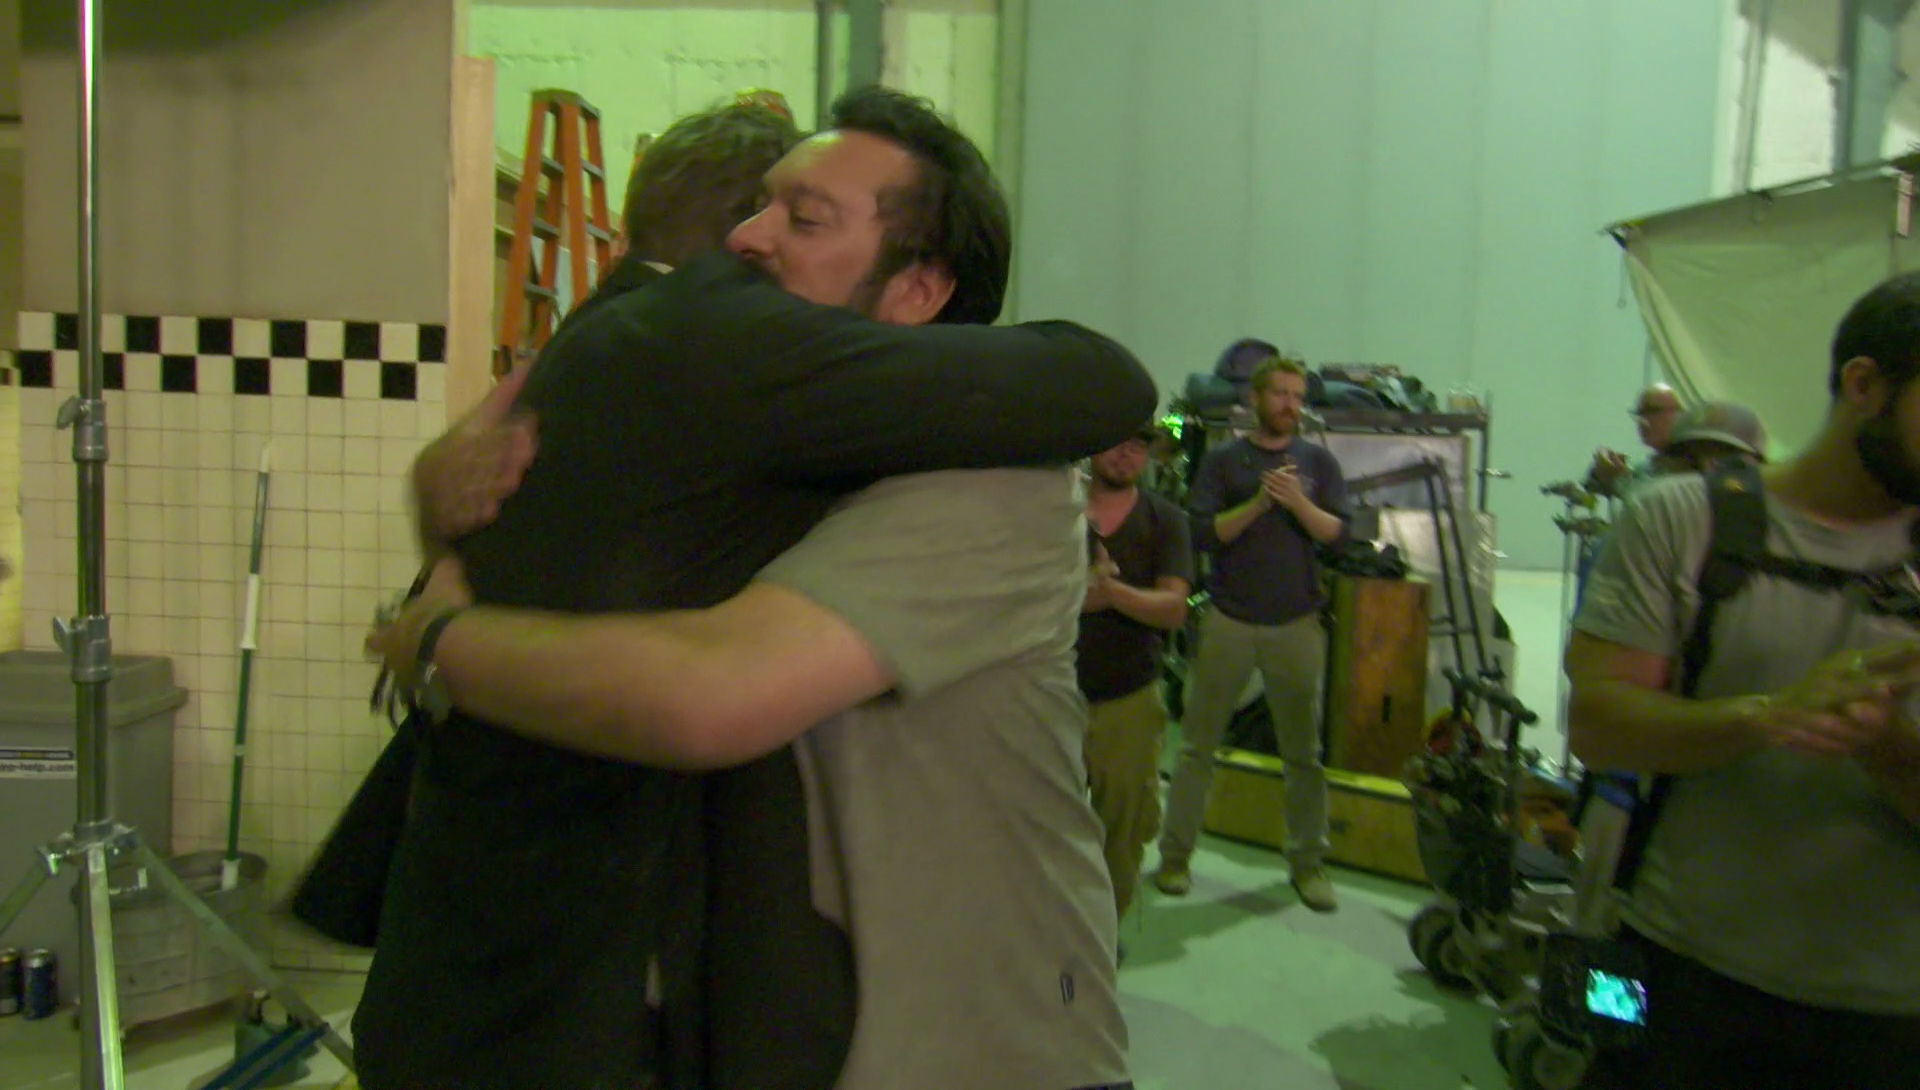 Hugh Jackman and James Mangold share a touching moment (20th Century Fox)